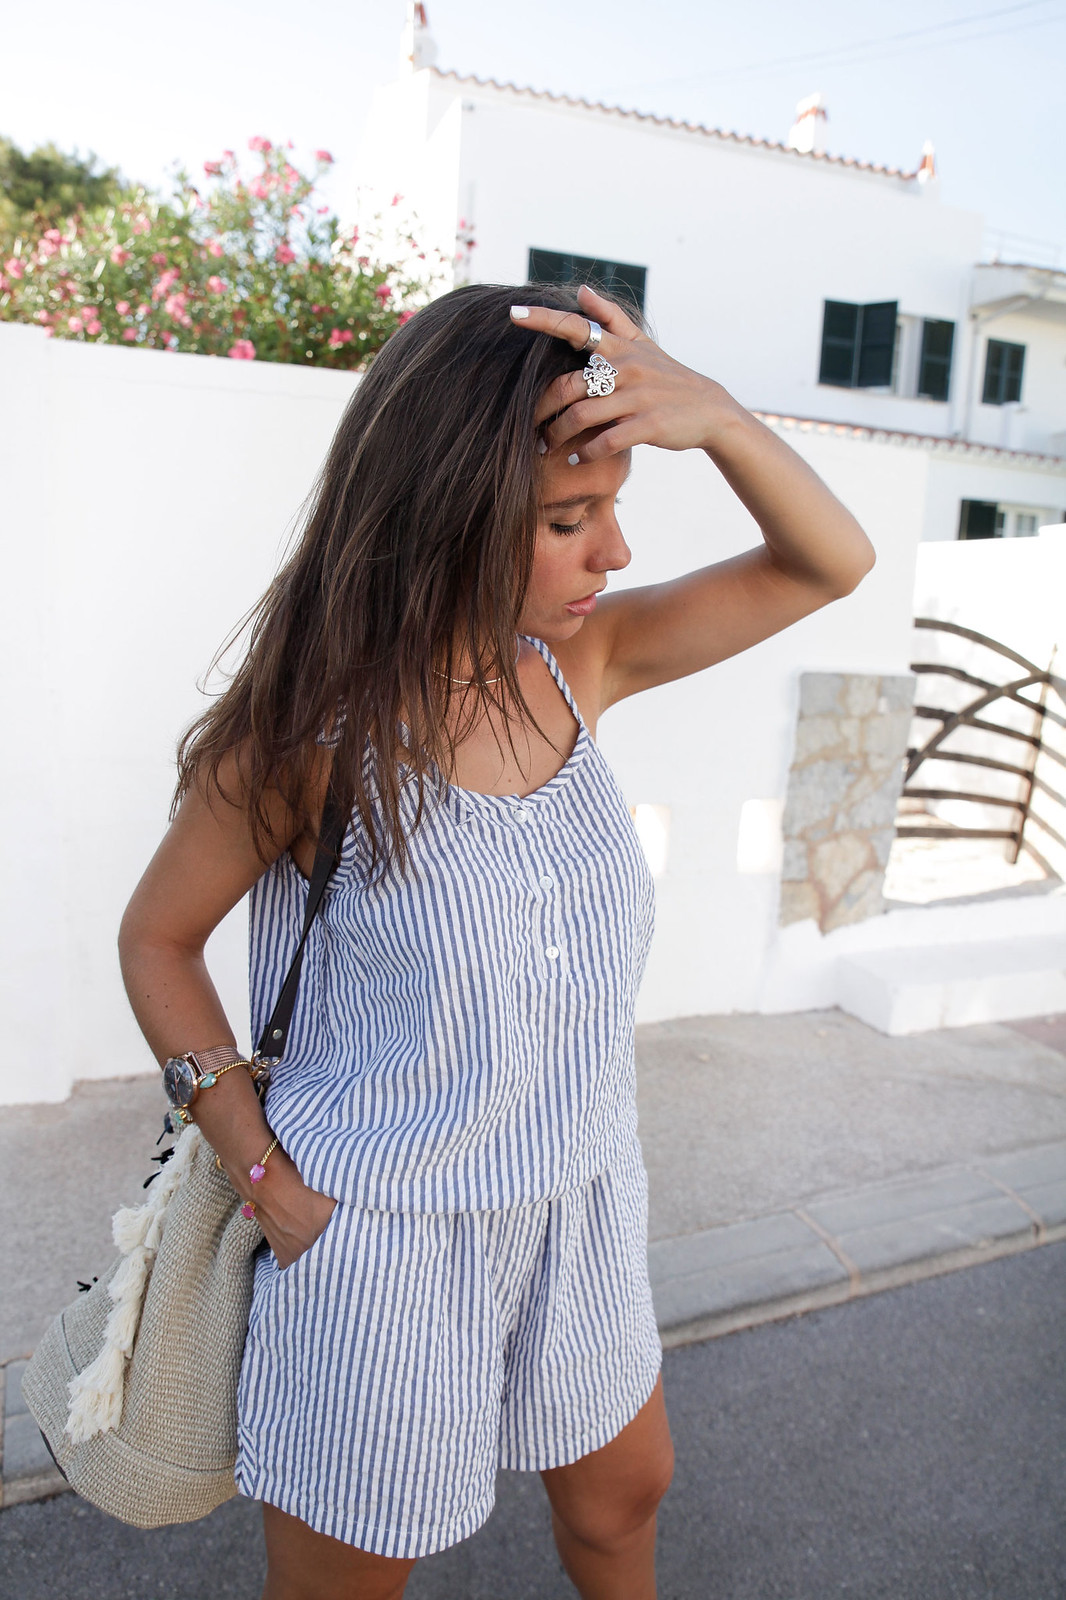 09_Mono_rayas_marineras_casual_outfit_theguestgirl_bolso_boho_via_email_pieces_style_the_guest_girl_influencer_menorca_minorca_barcelona_spain_fashion_blogger